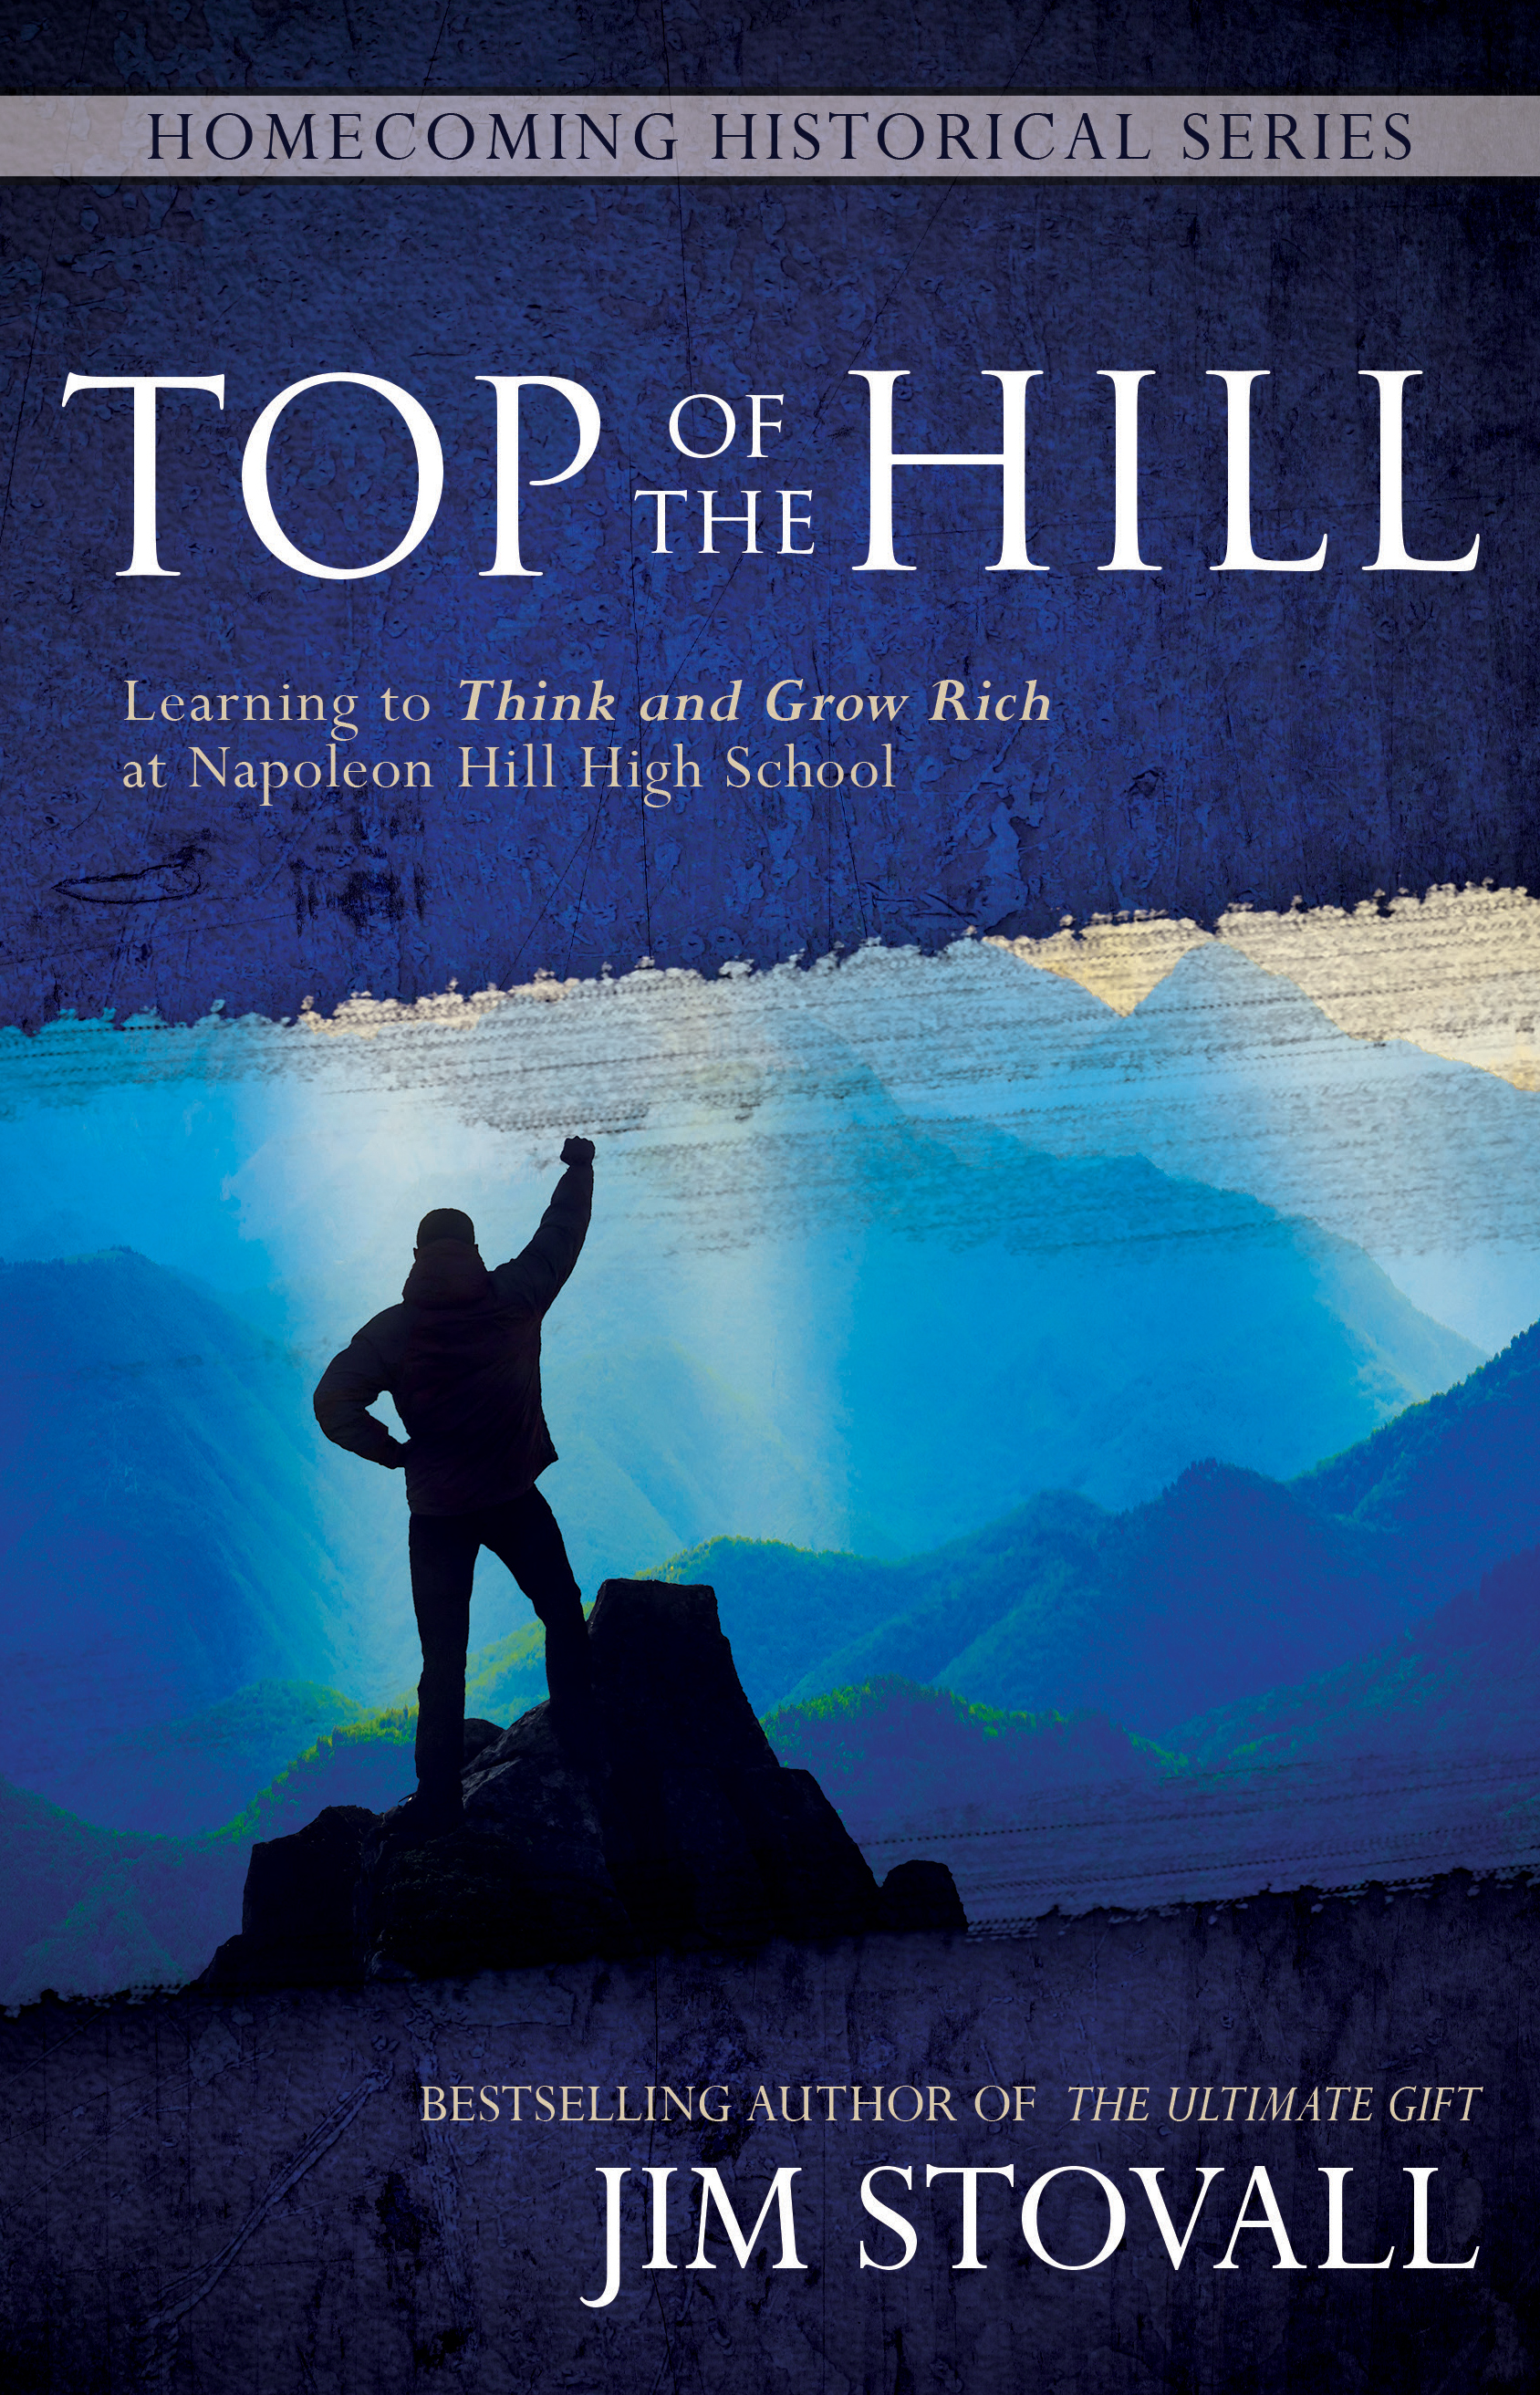 Top of the Hill - Jim Stovall